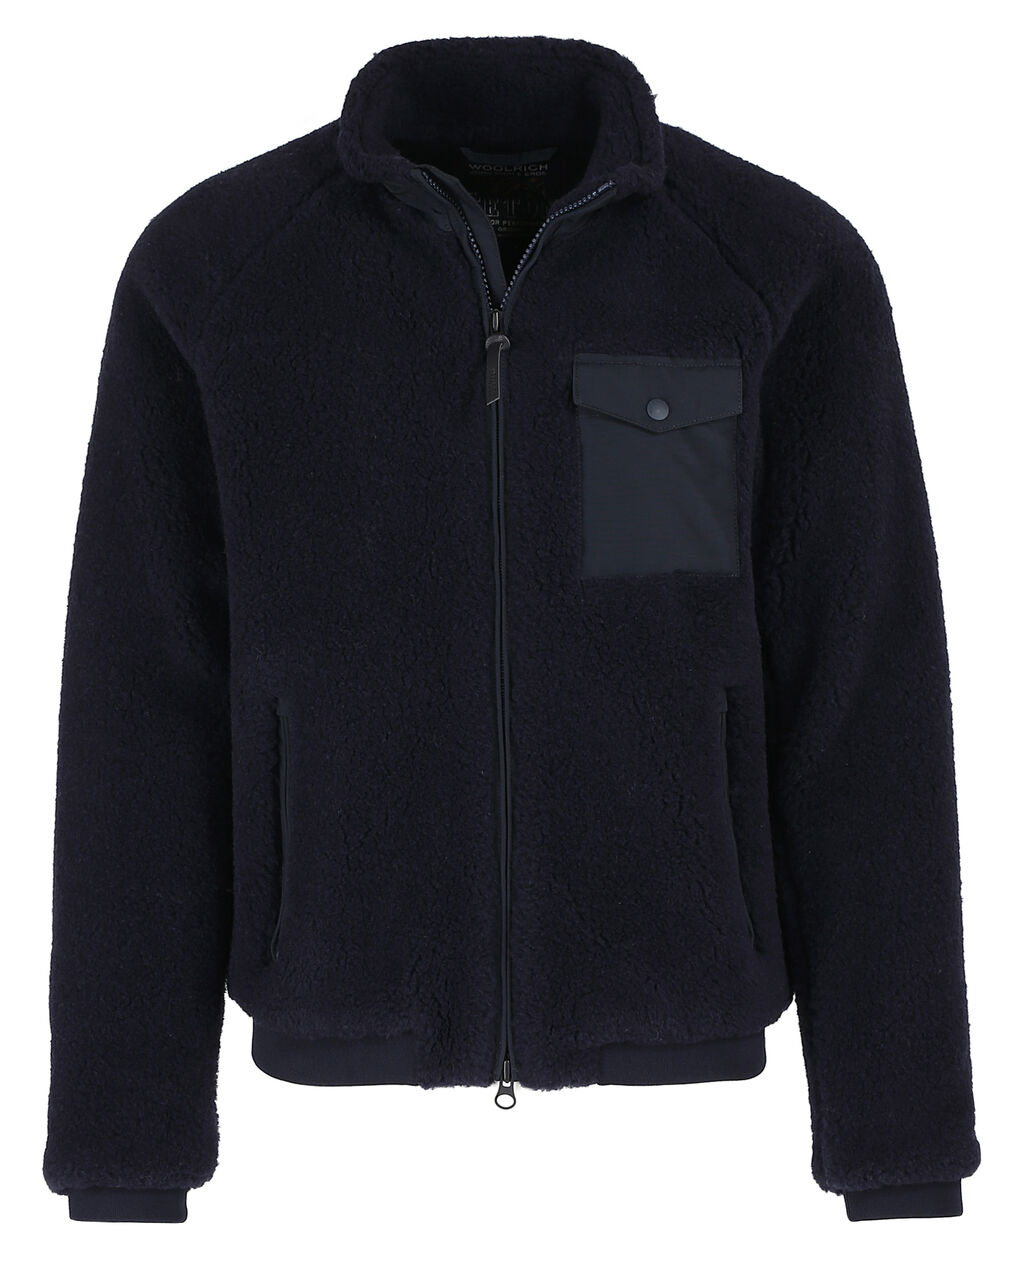 Merino Wool Bomber, MELTON BLUE, hi-res